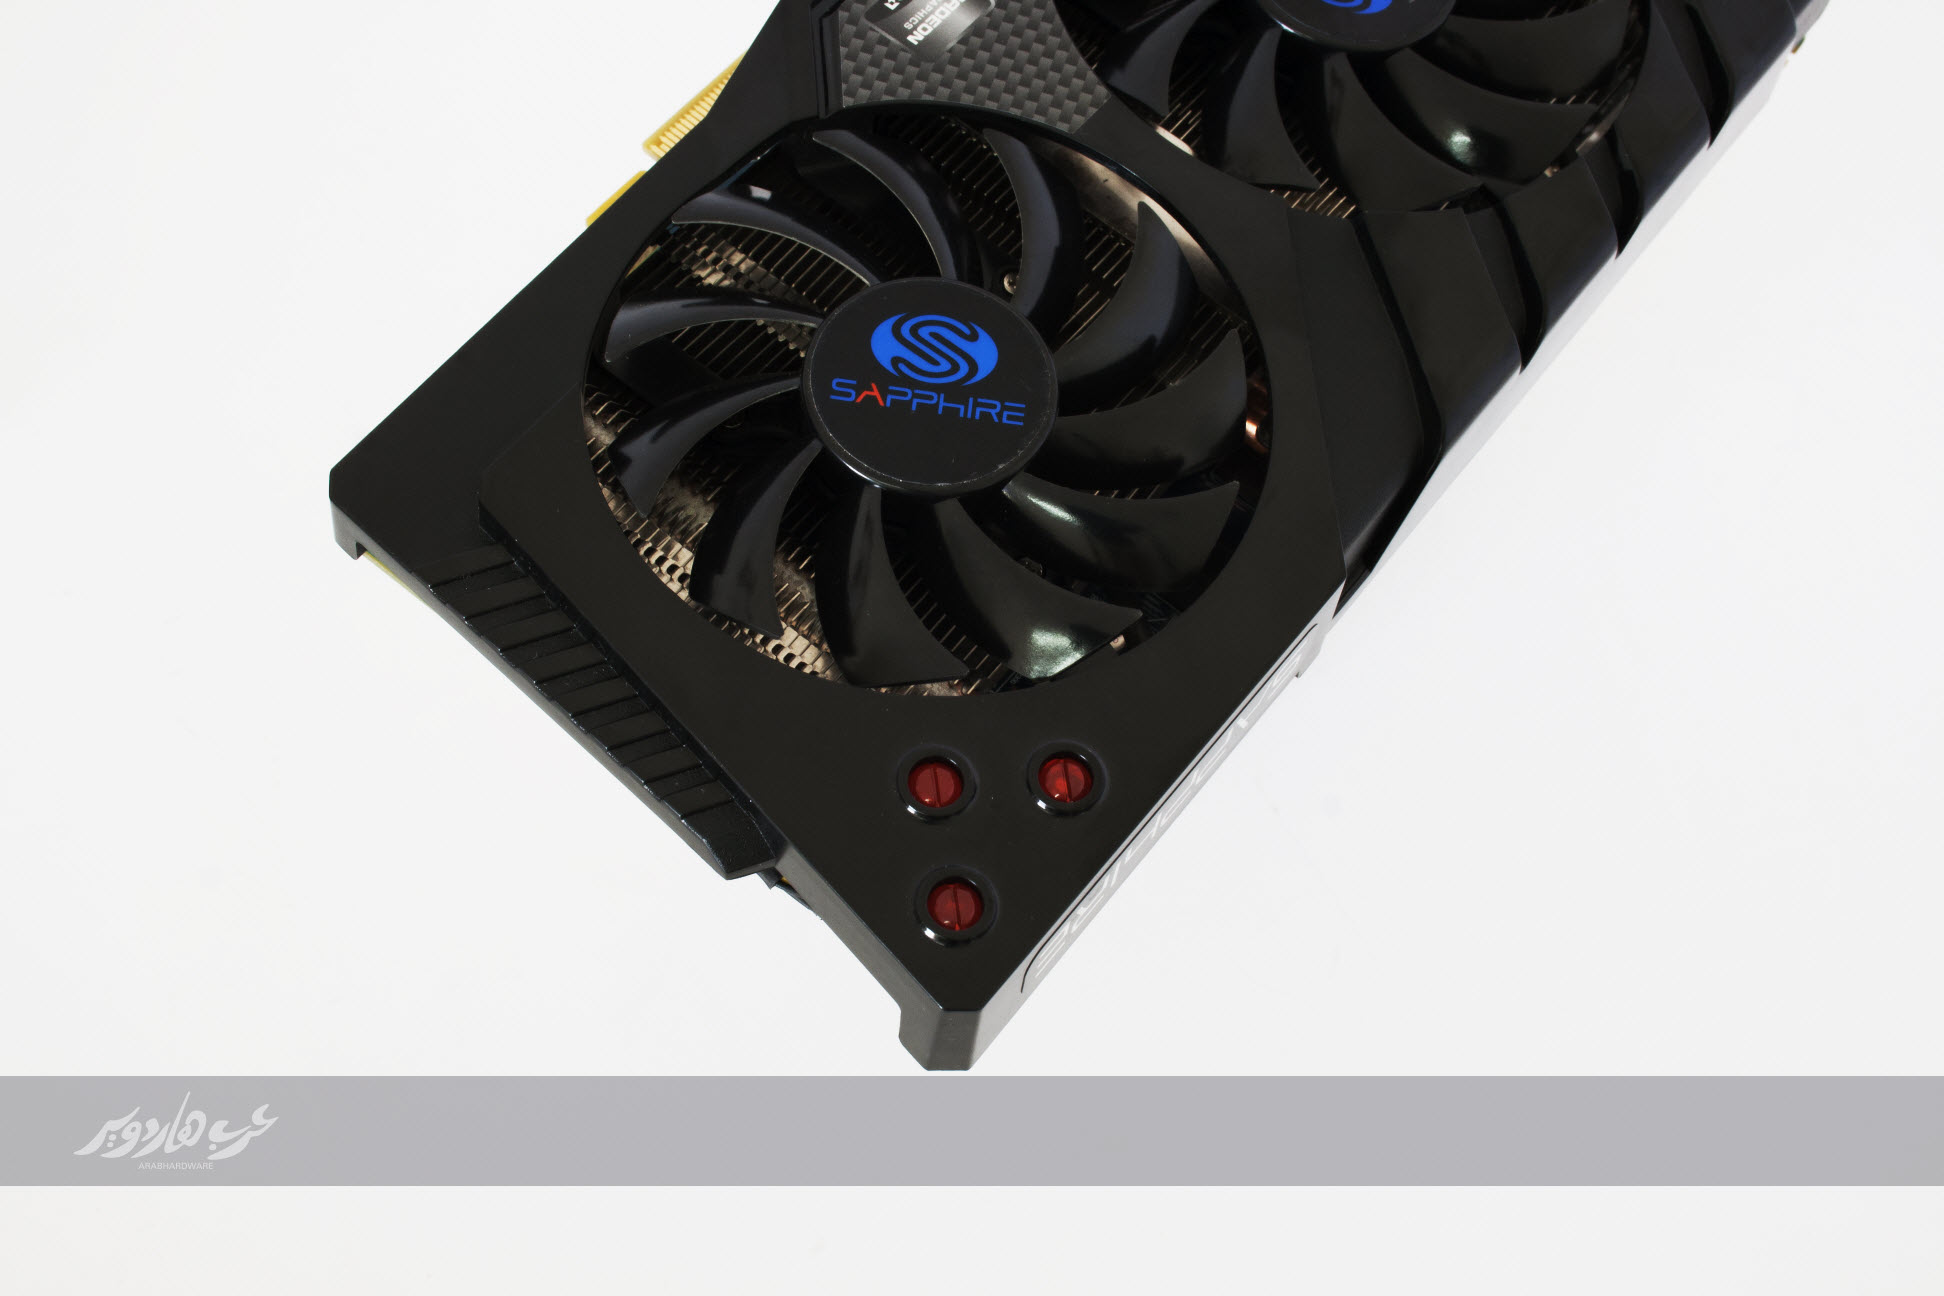 saphhire-hd7850-fan-cover